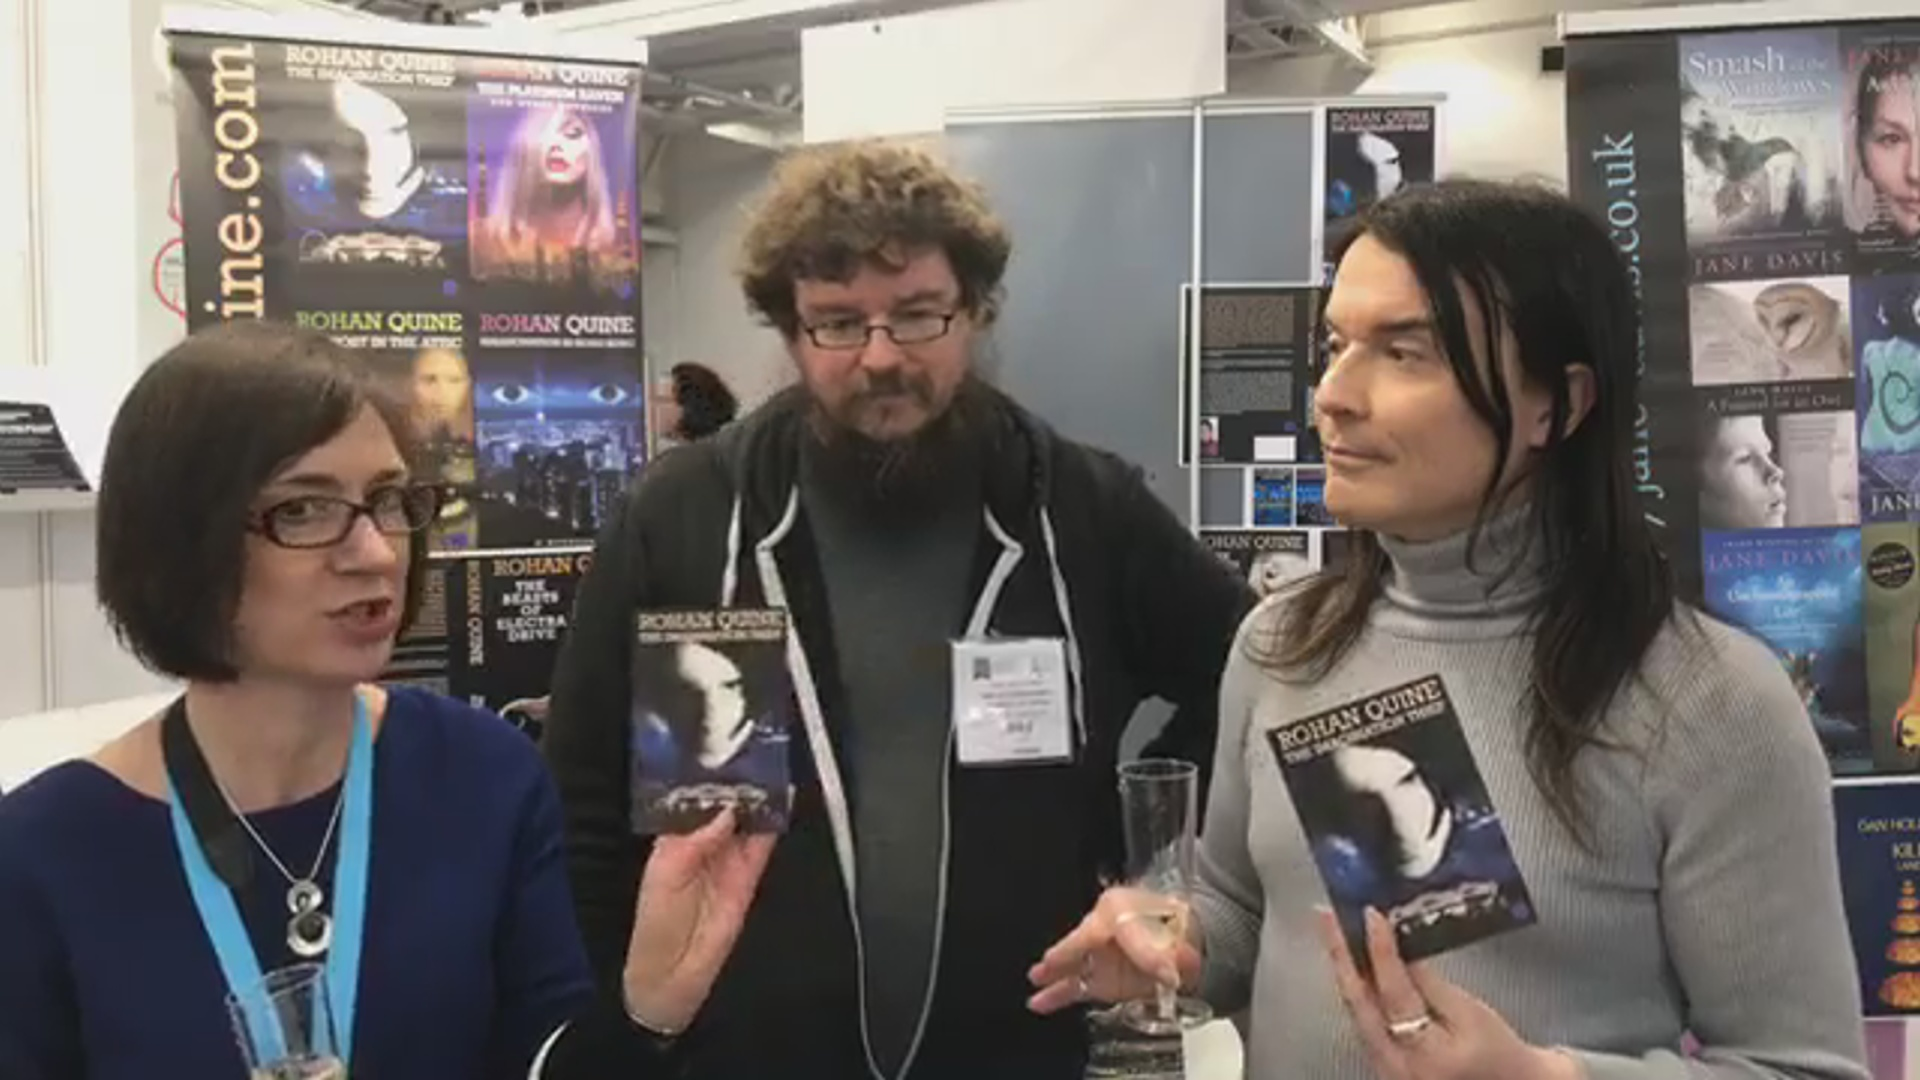 LBF18 launch of Rohan Quine's 'The Beasts of Electra Drive', Dan Holloway's 'Kill Land' & Jane Davis's 'Smash all the Windows' - 5